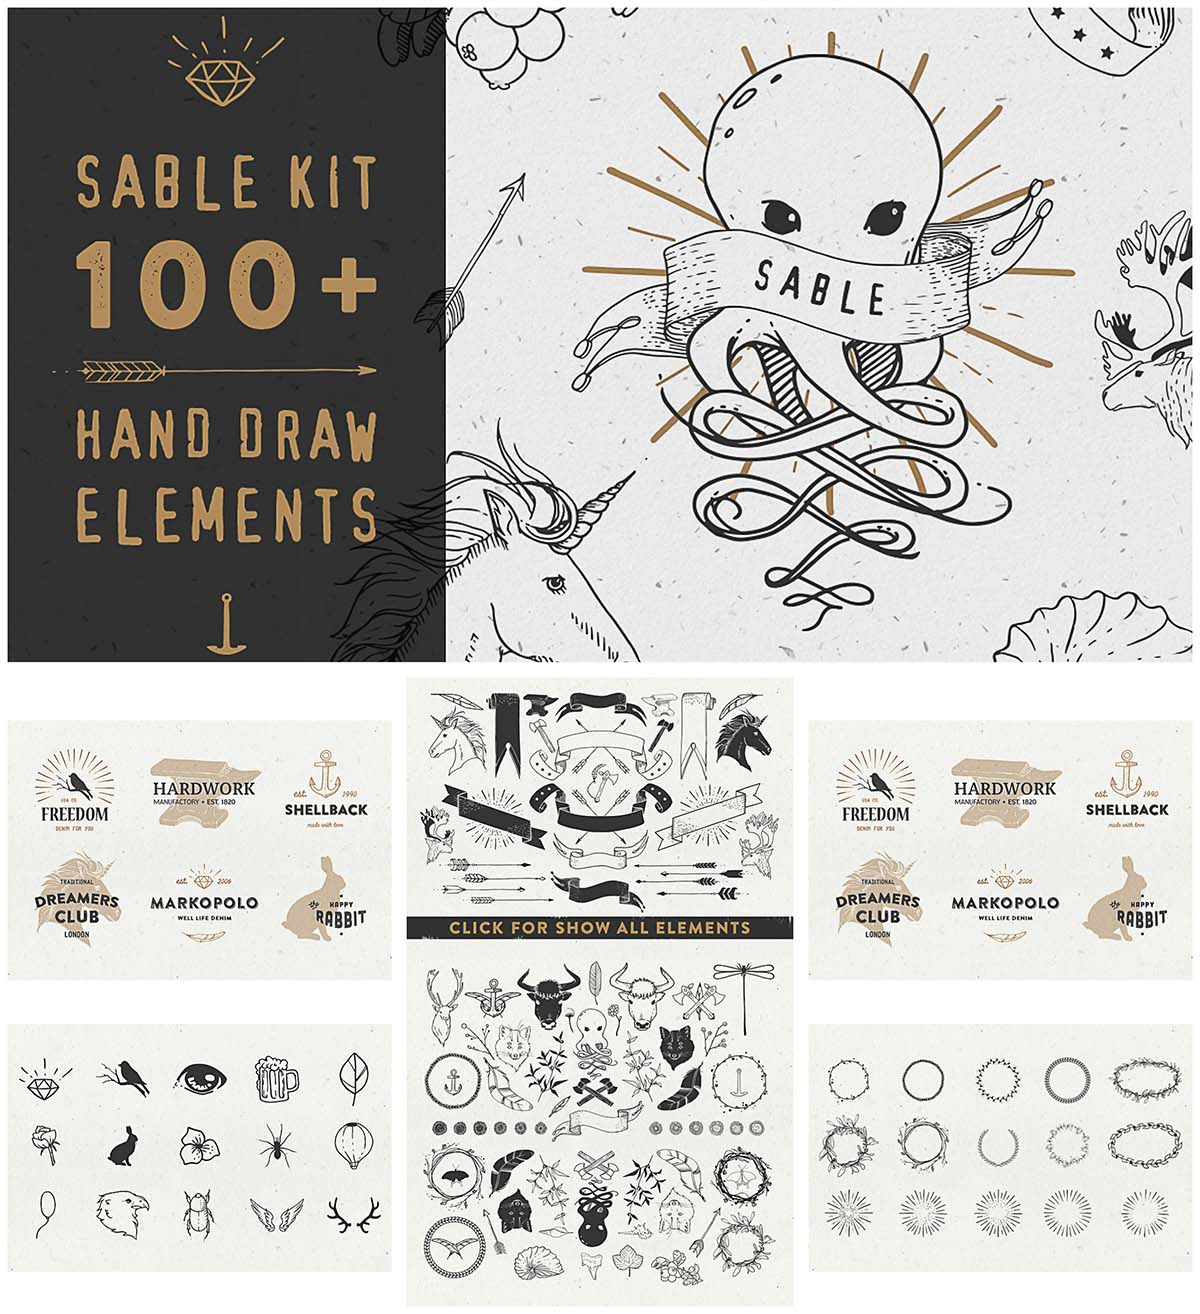 Sable Kit hand drawn elements